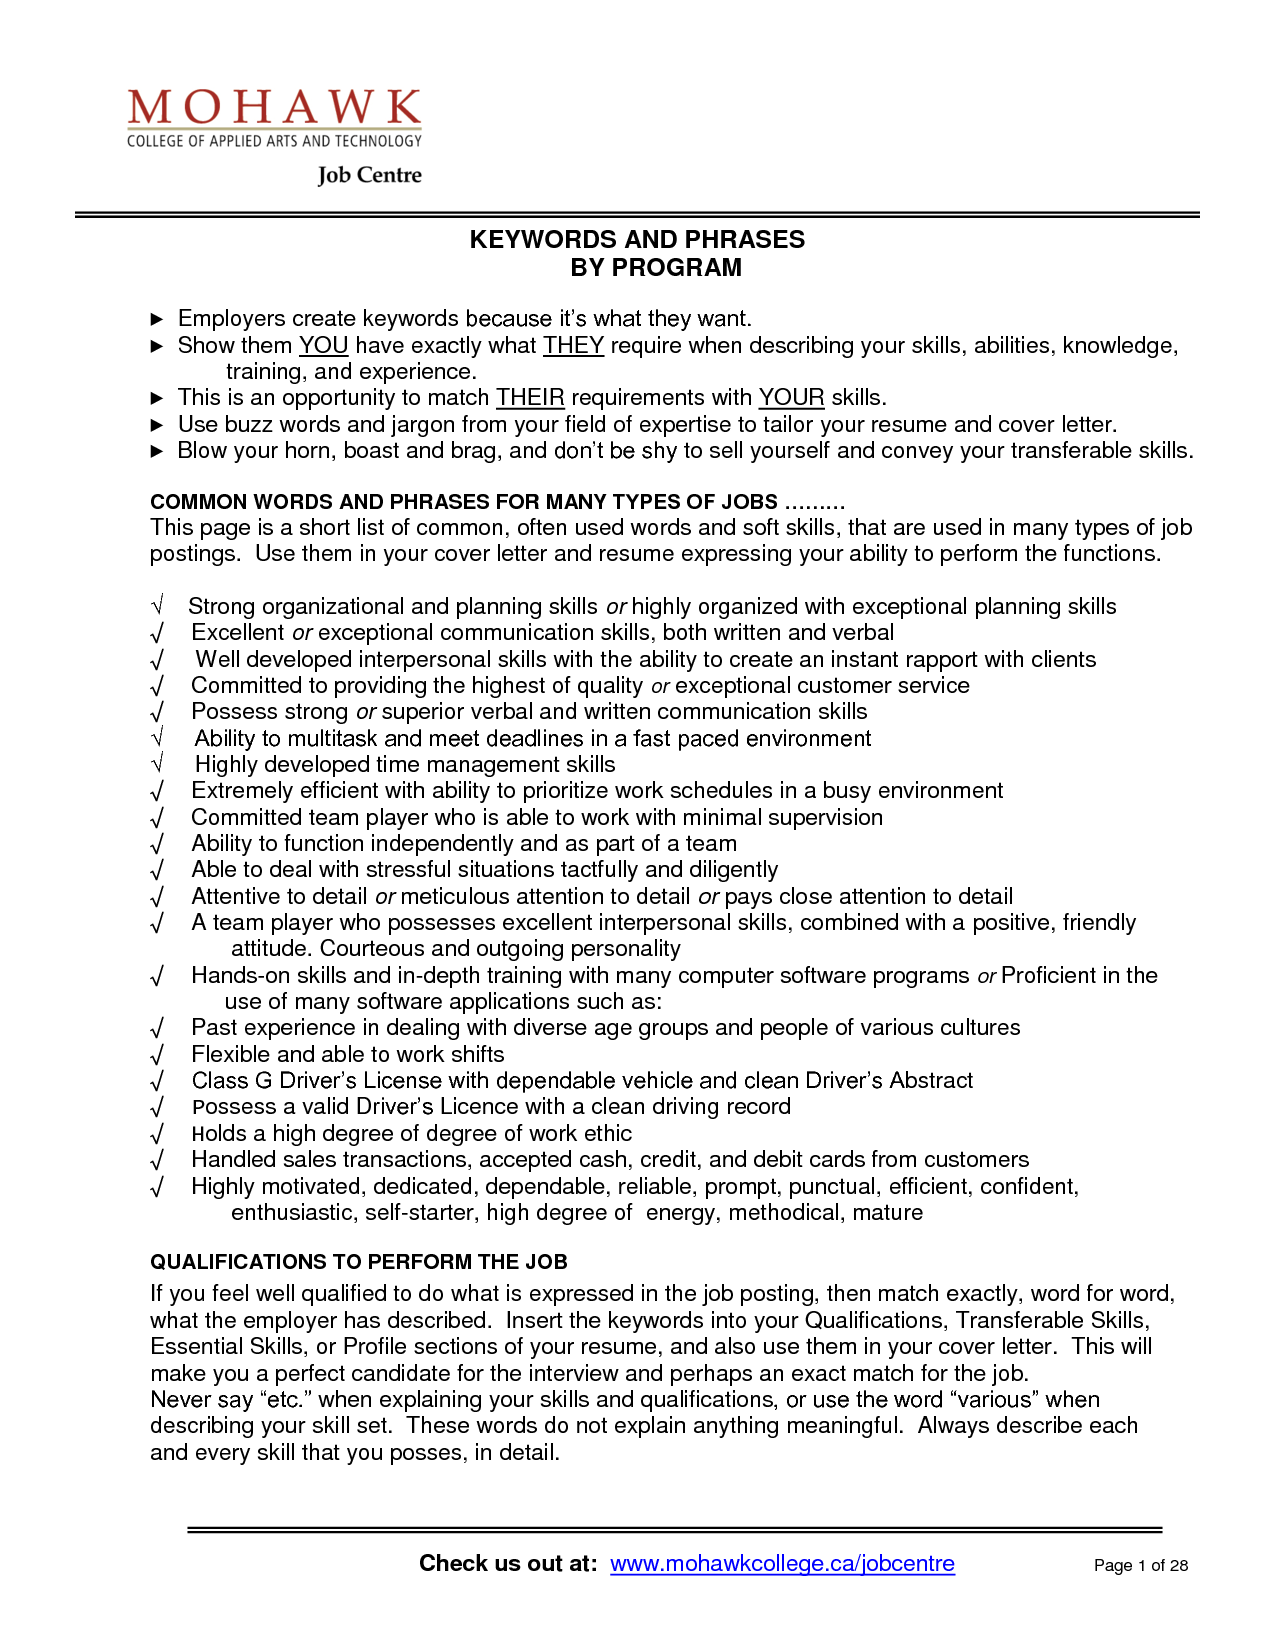 transferable skills resume | transferable skills resume sample ...